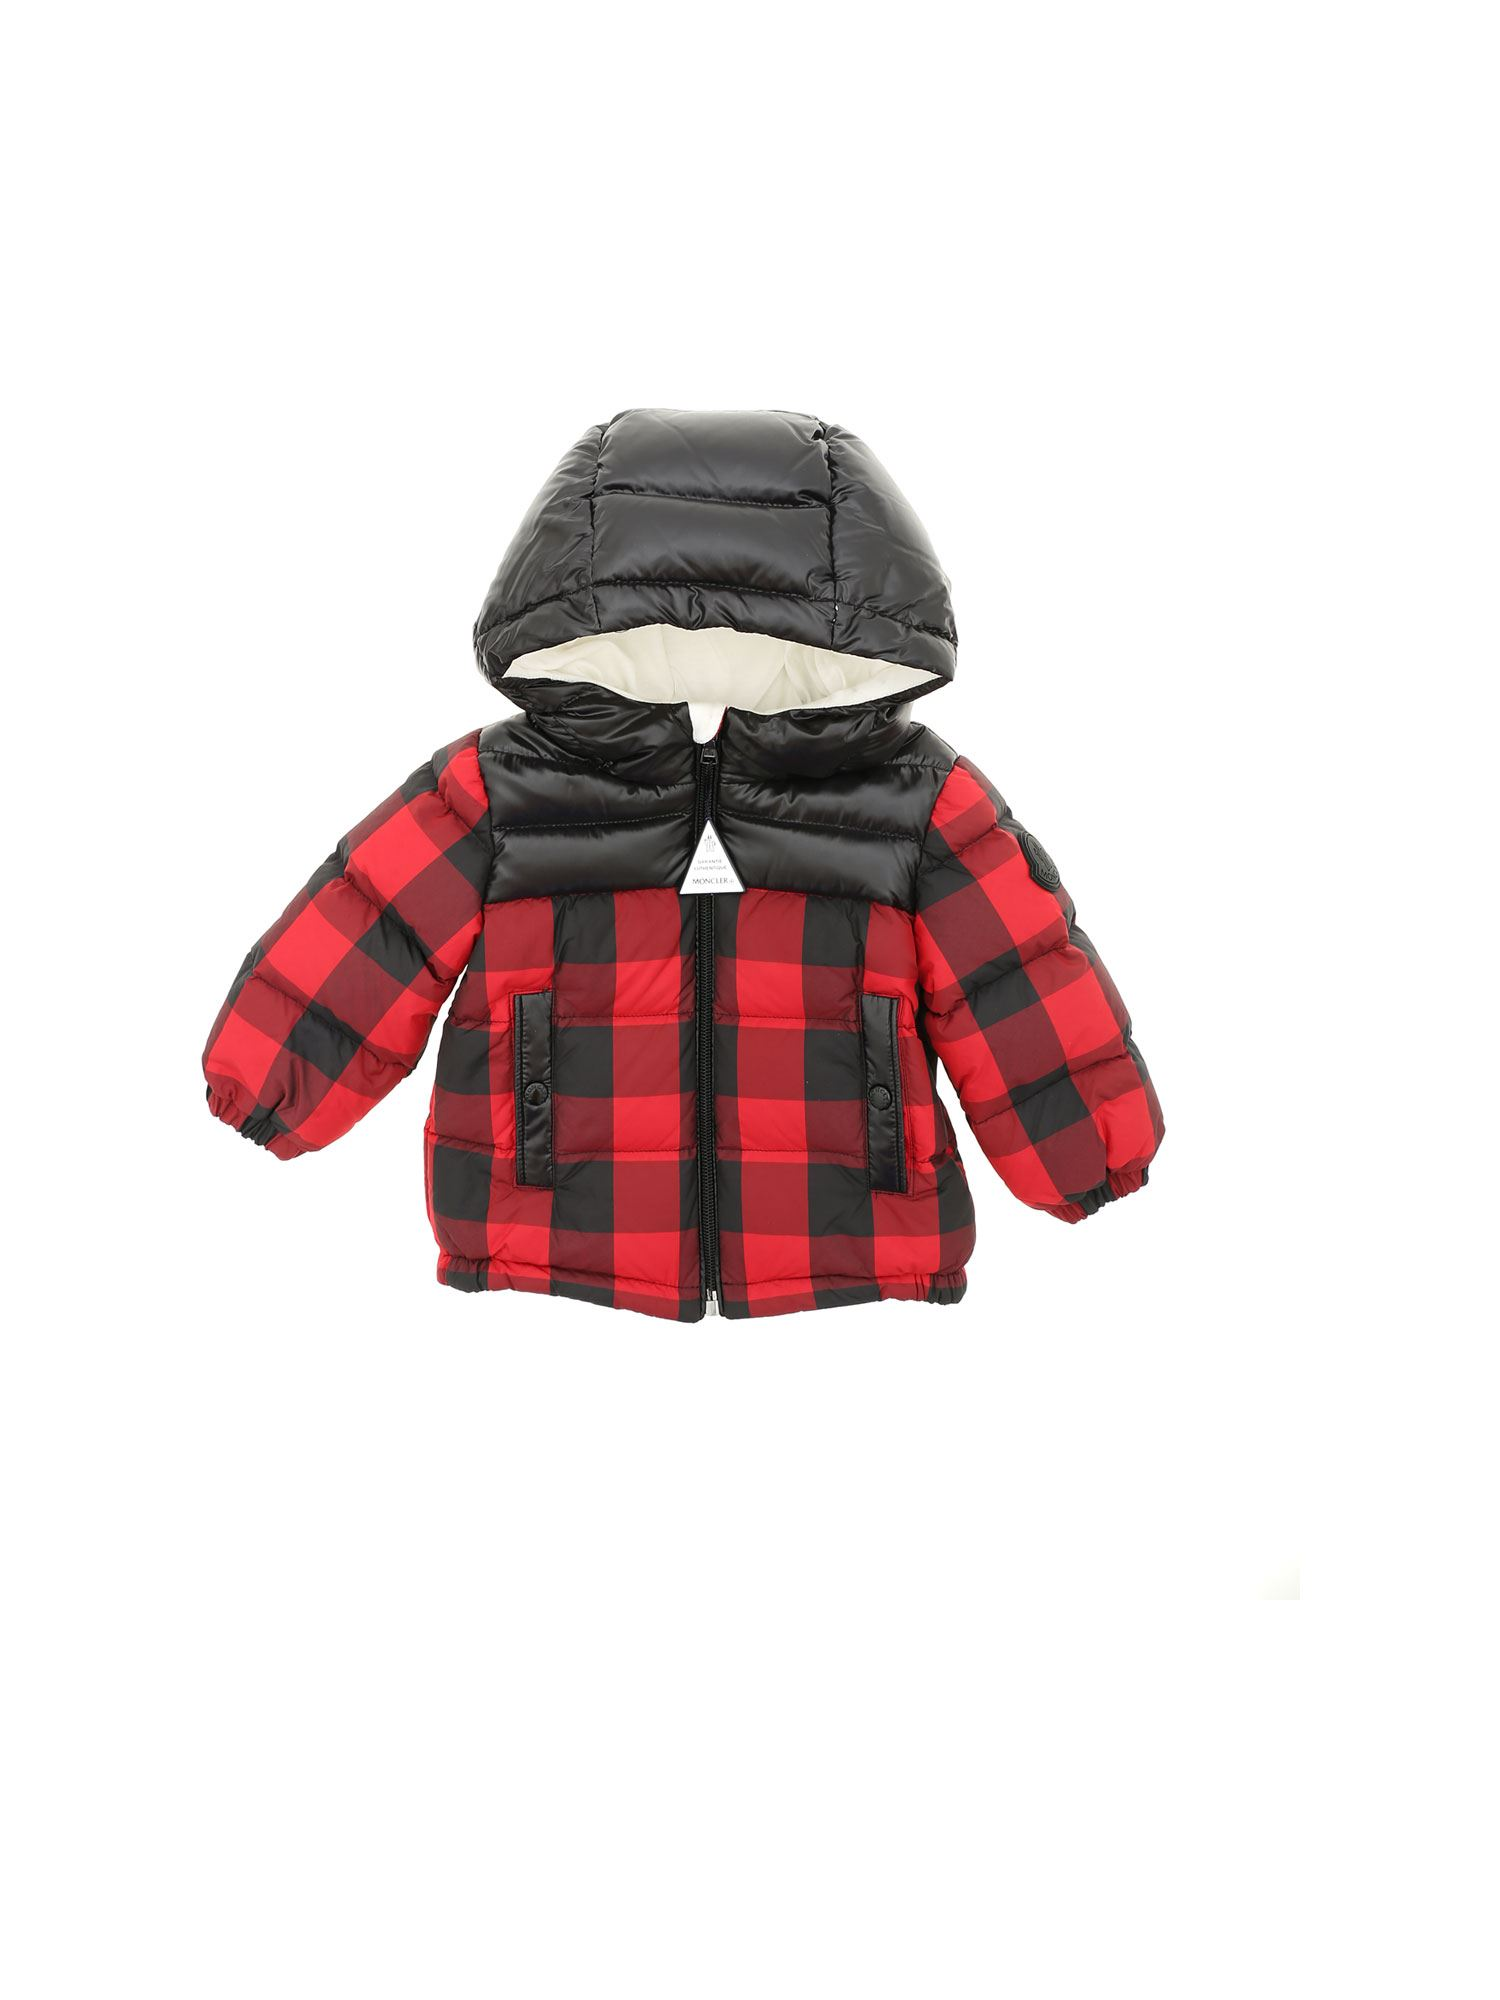 Moncler Jr Downs CALTROP DOWN JACKET IN BLACK AND RED